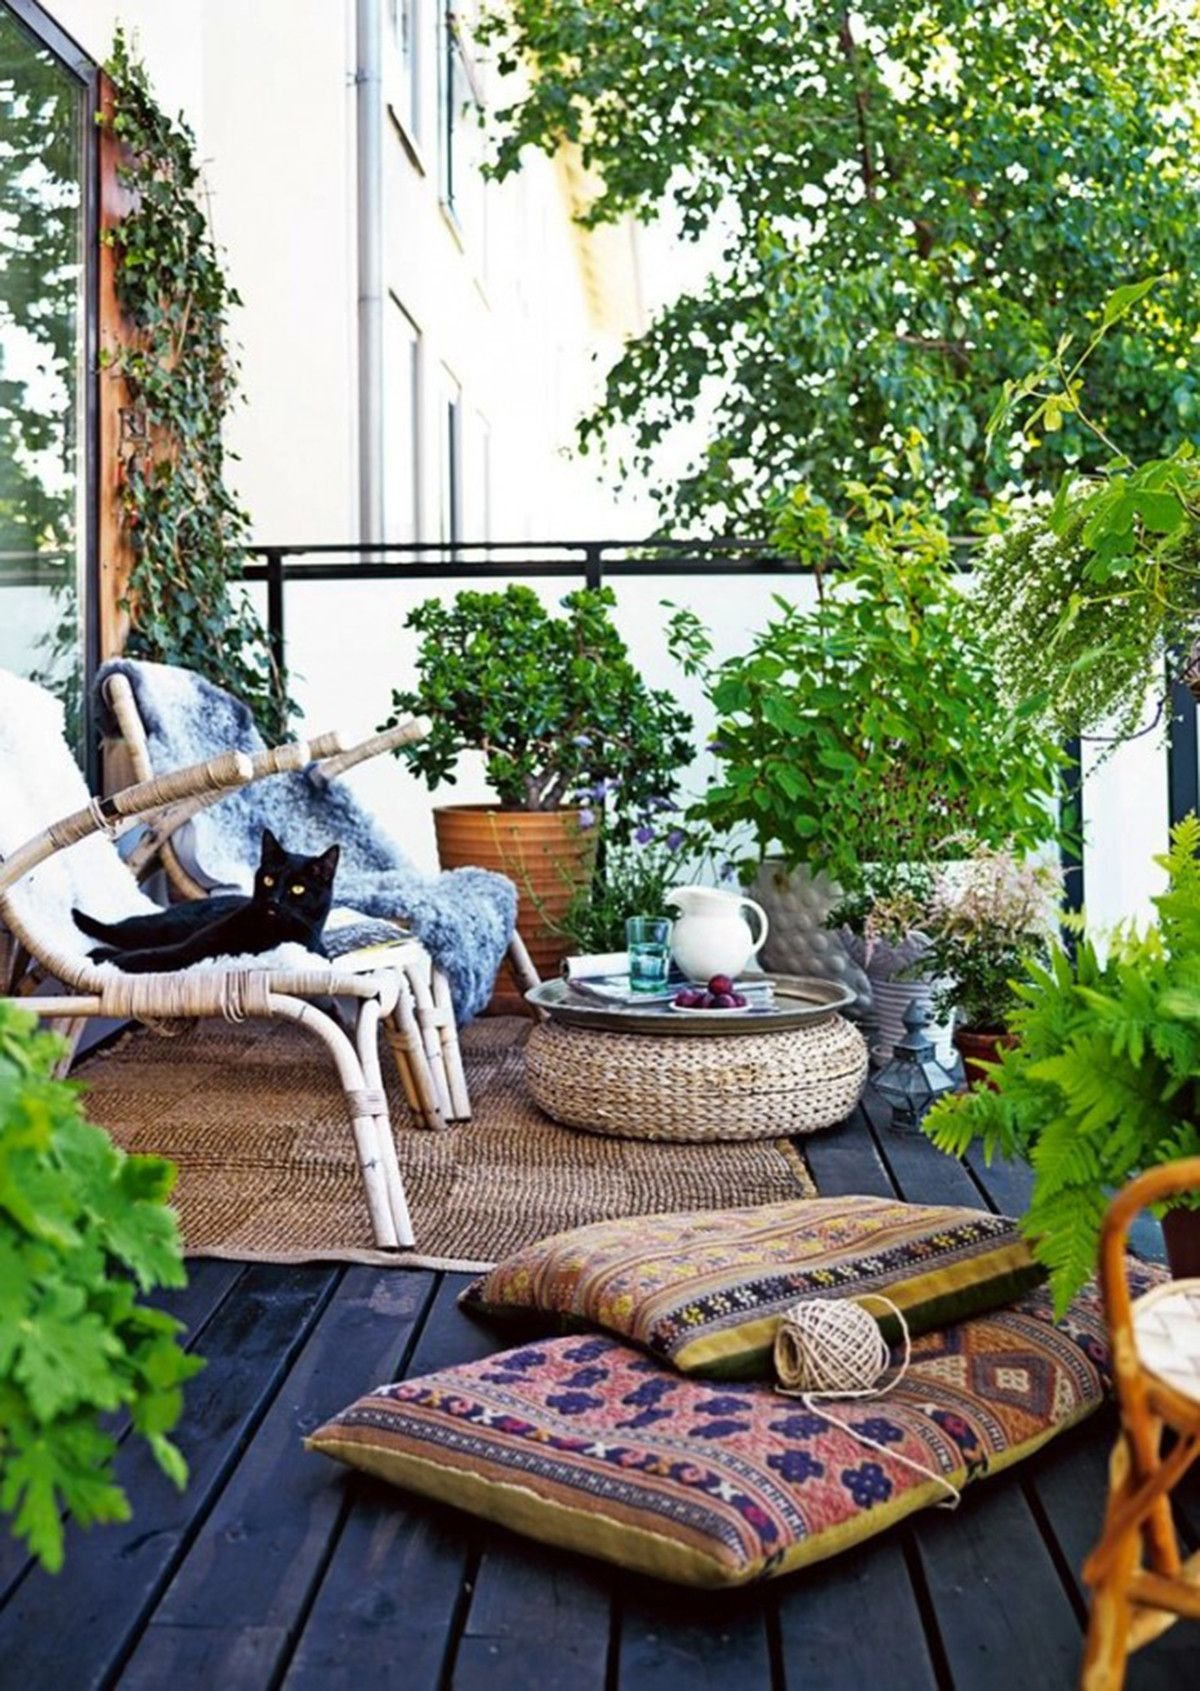 small balcony decor ideas perfect for renters we discuss ways to